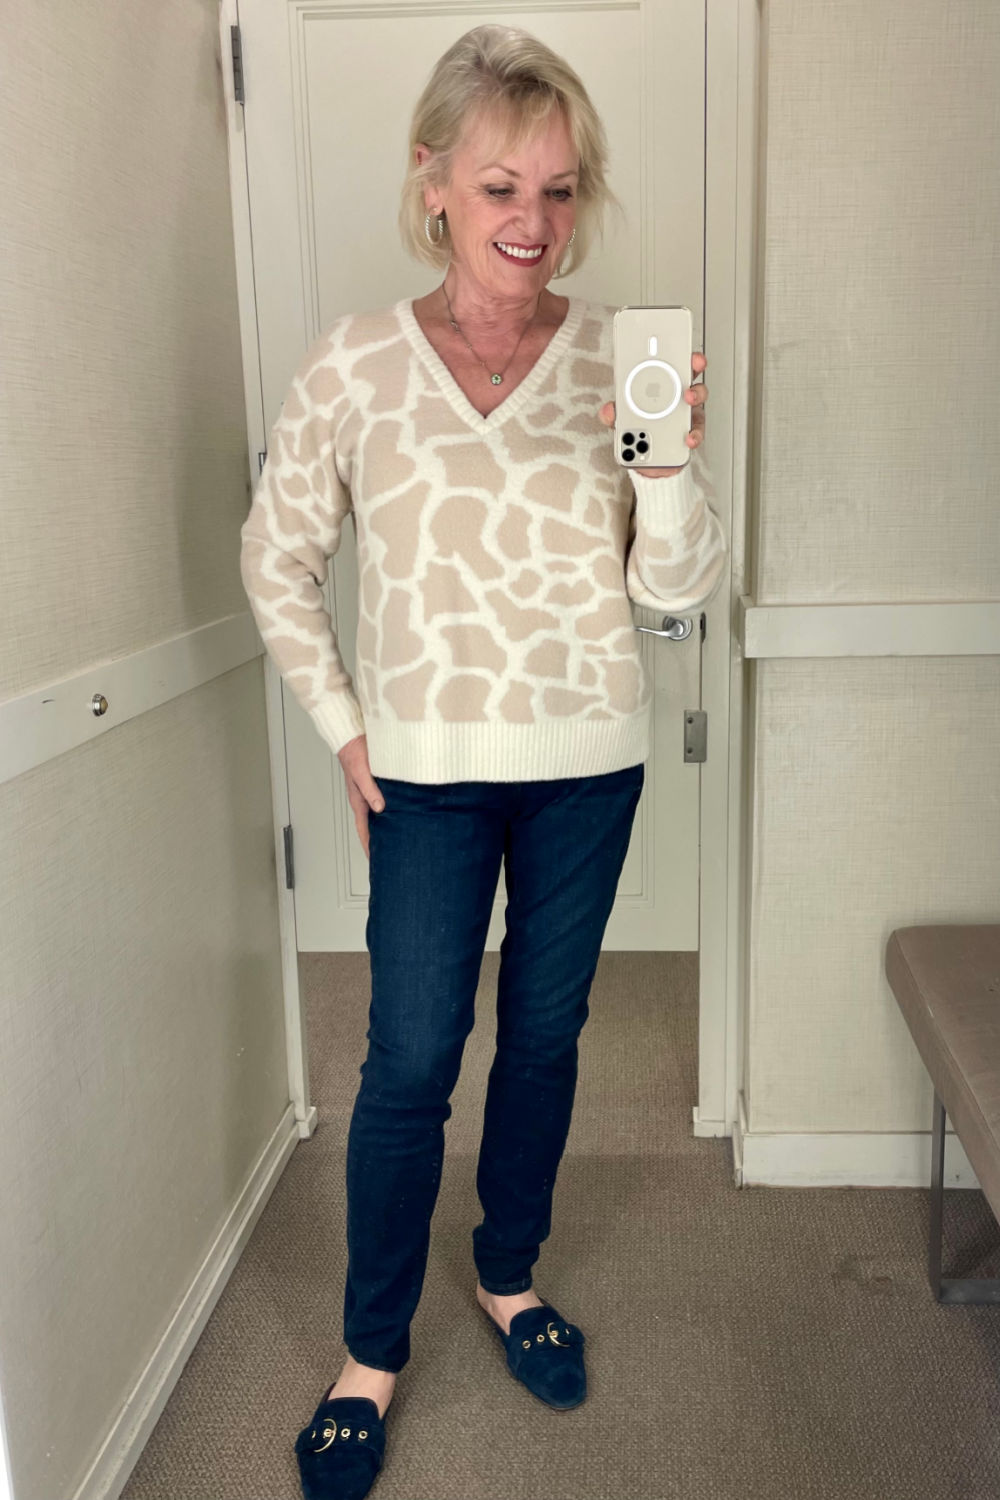 animal print sweater and deep blue jeans on woman in dressing room